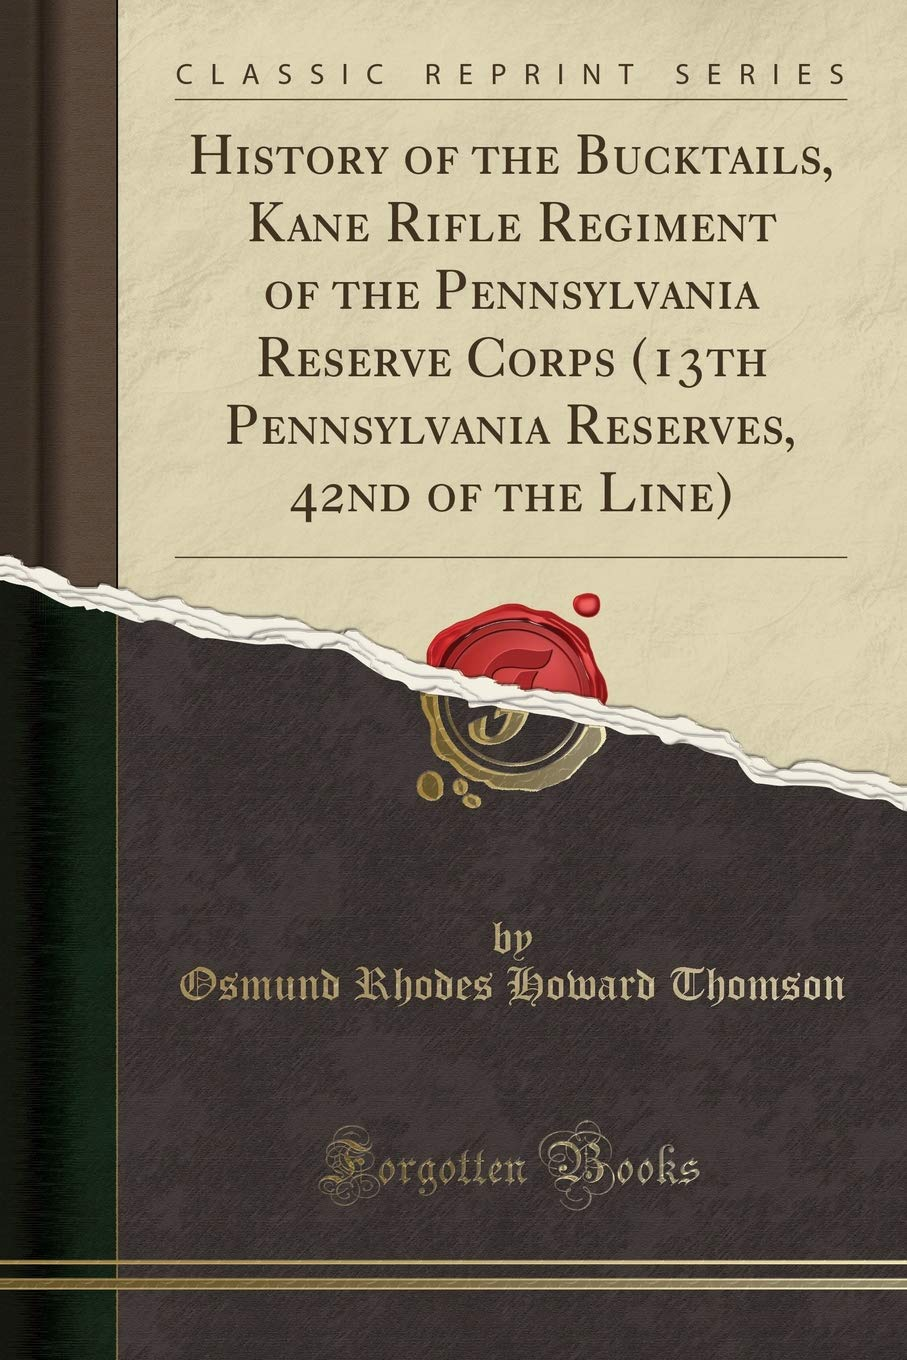 History of the Bucktails, Kane Rifle Regiment of the Pennsylvania Reserve Corps (13th Pennsylvania Reserves, 42nd of the Line) (Classic Reprint) pdf